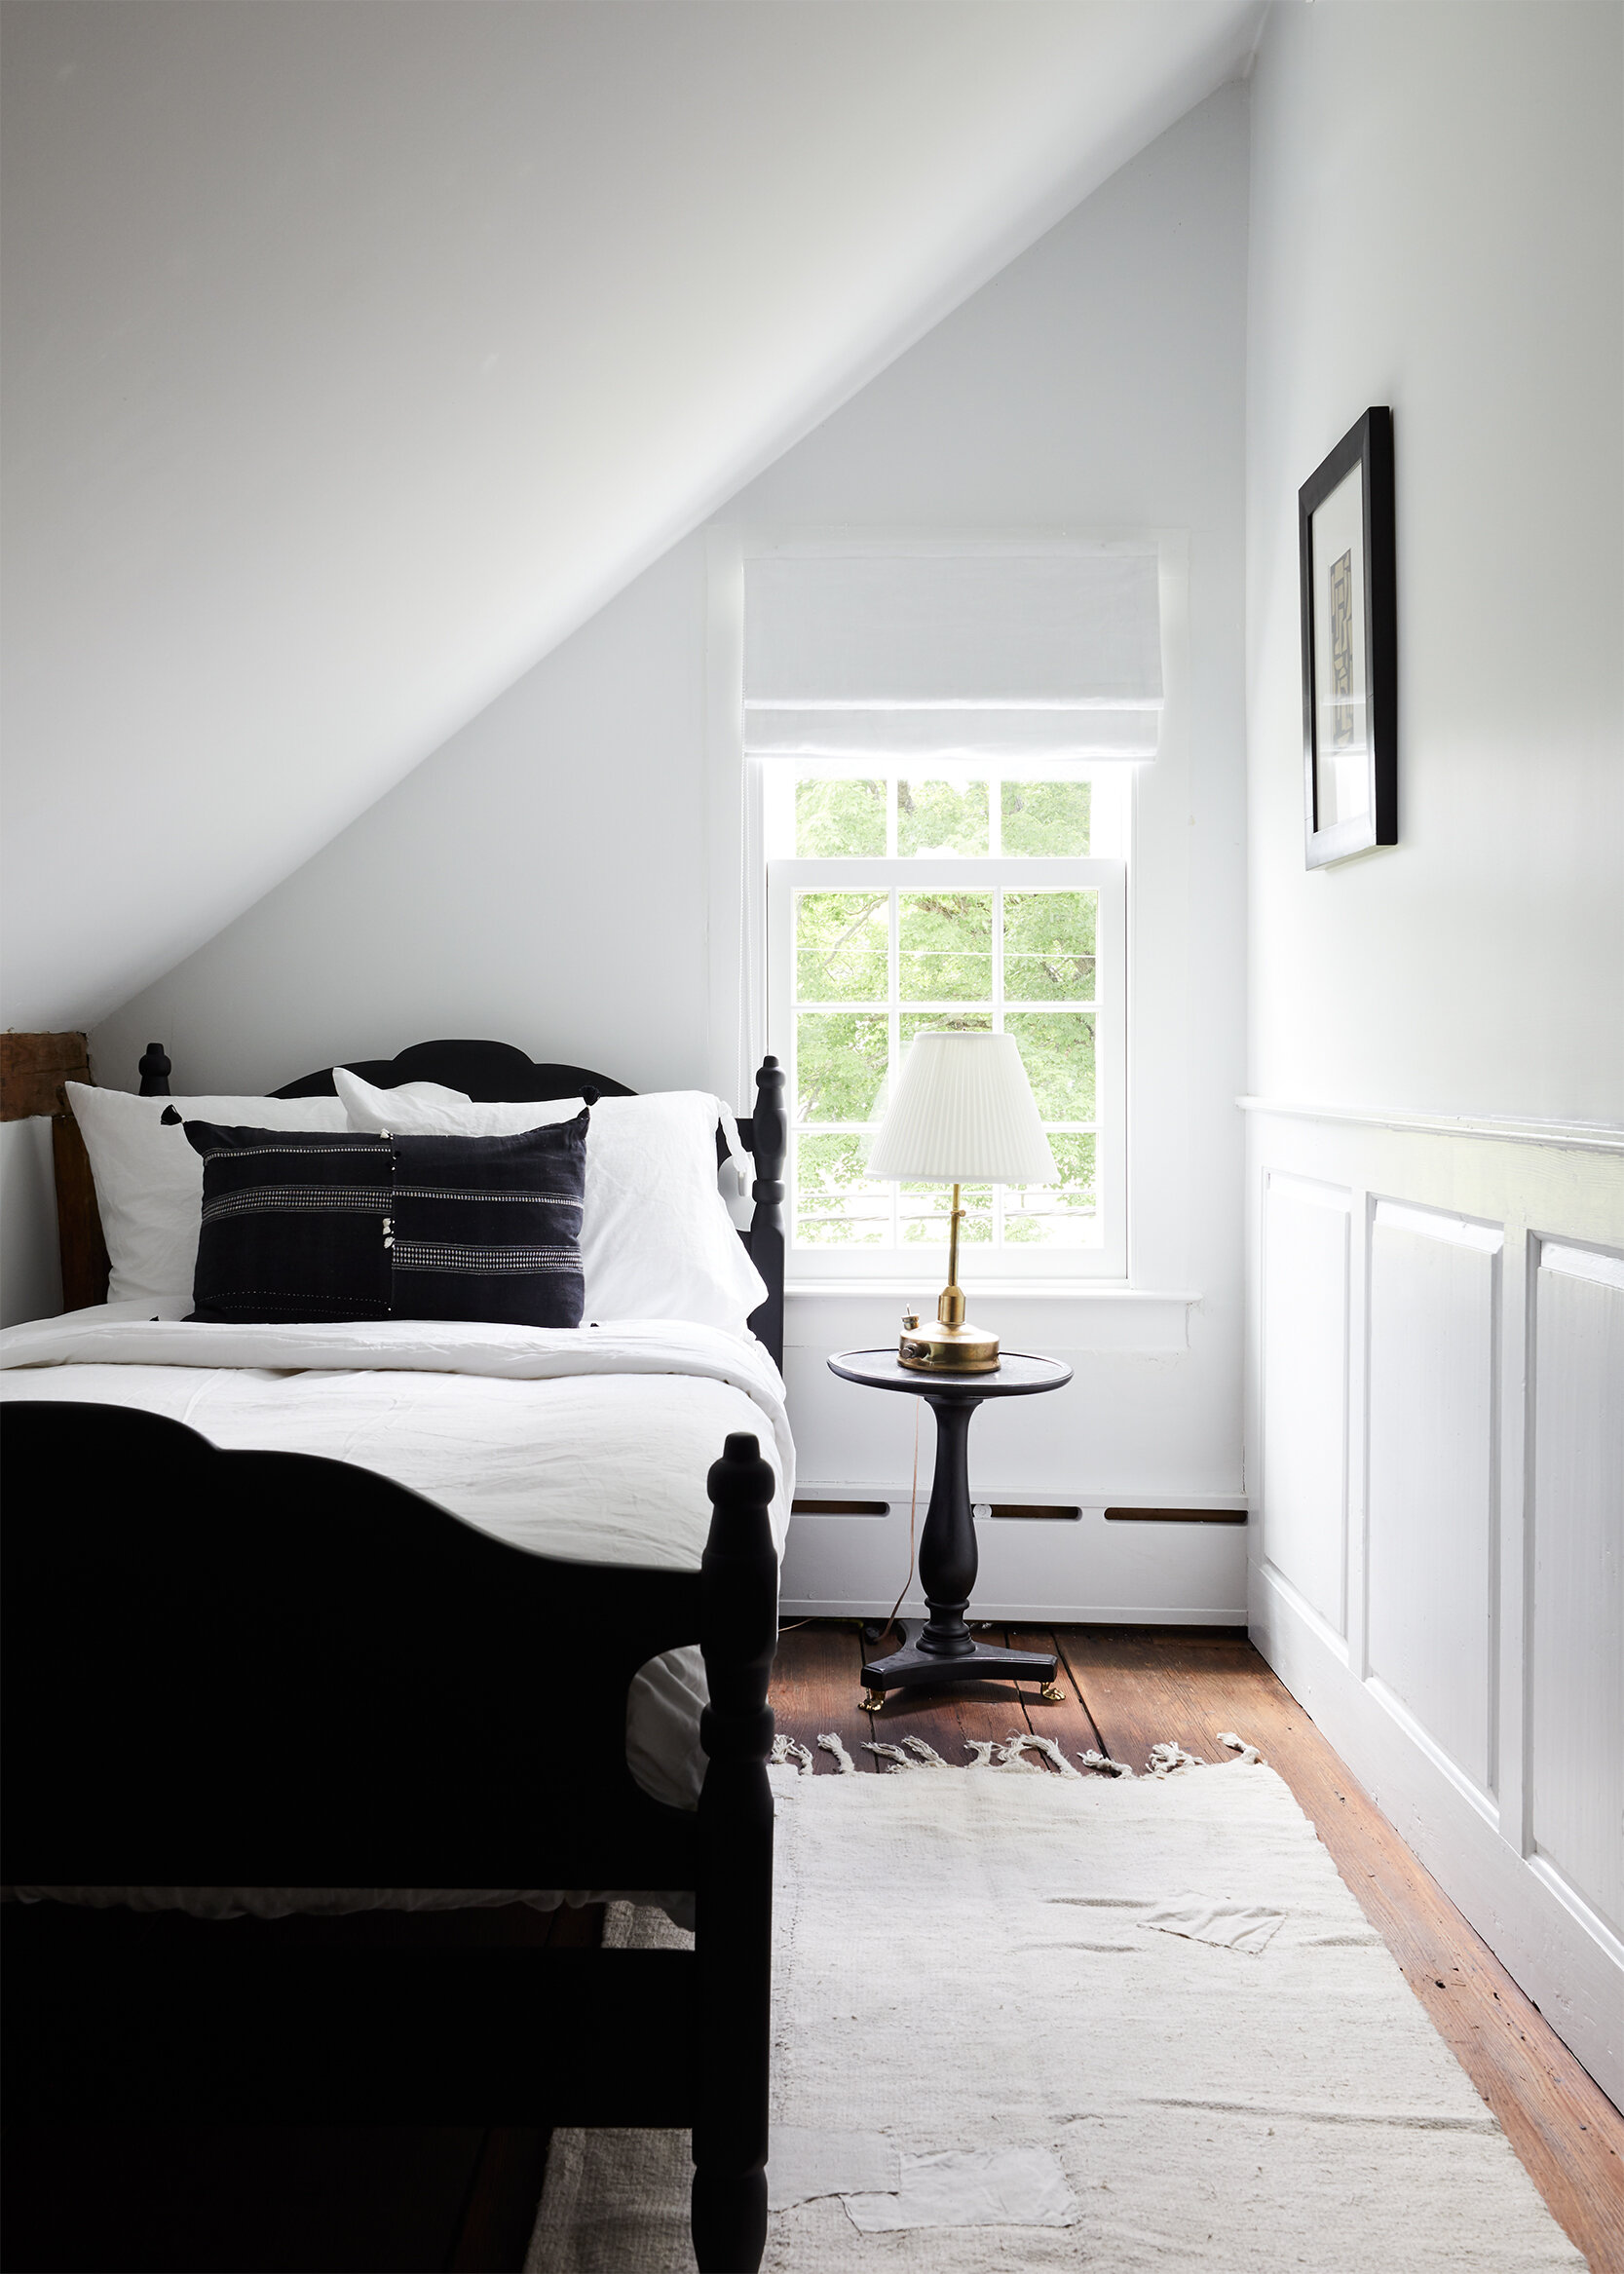 nune_Bruey Cottage_single bedroom_01.jpg